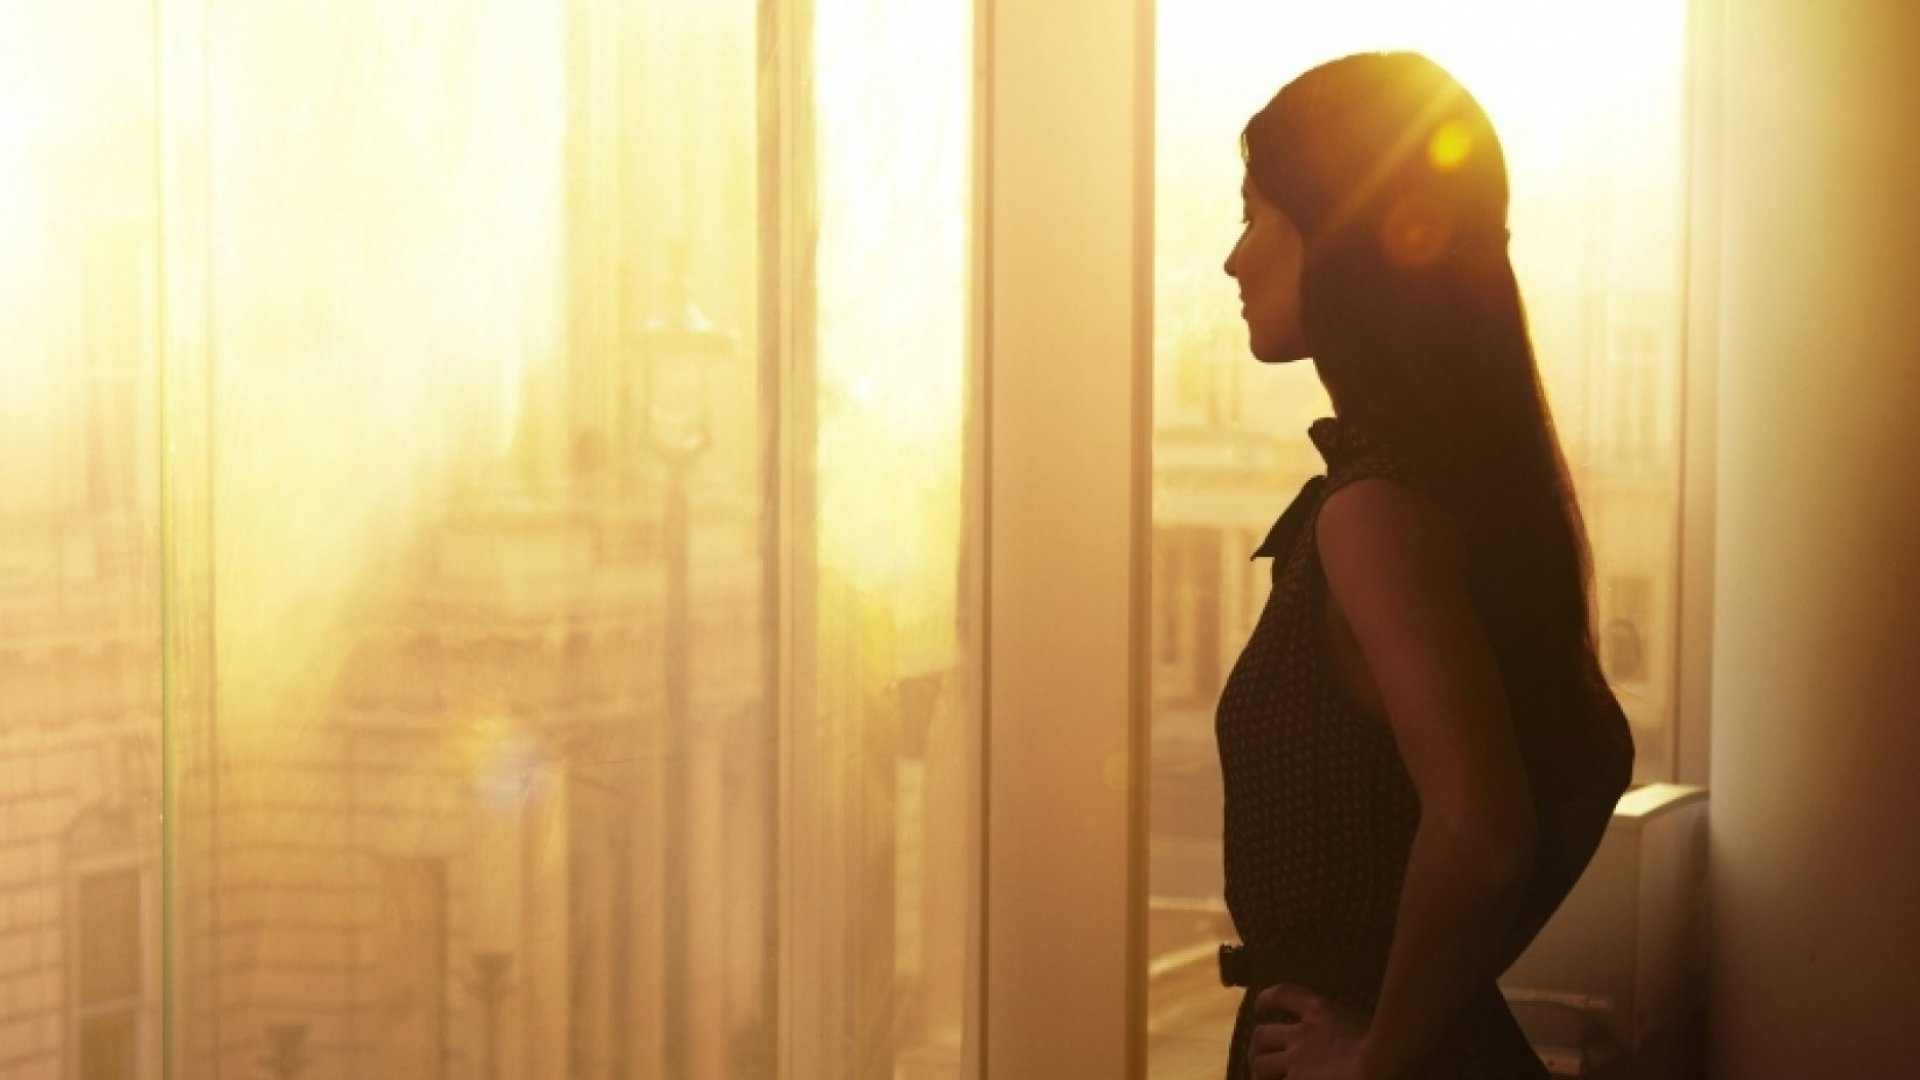 Tapping Into Female Talent For a Competitive Advantage